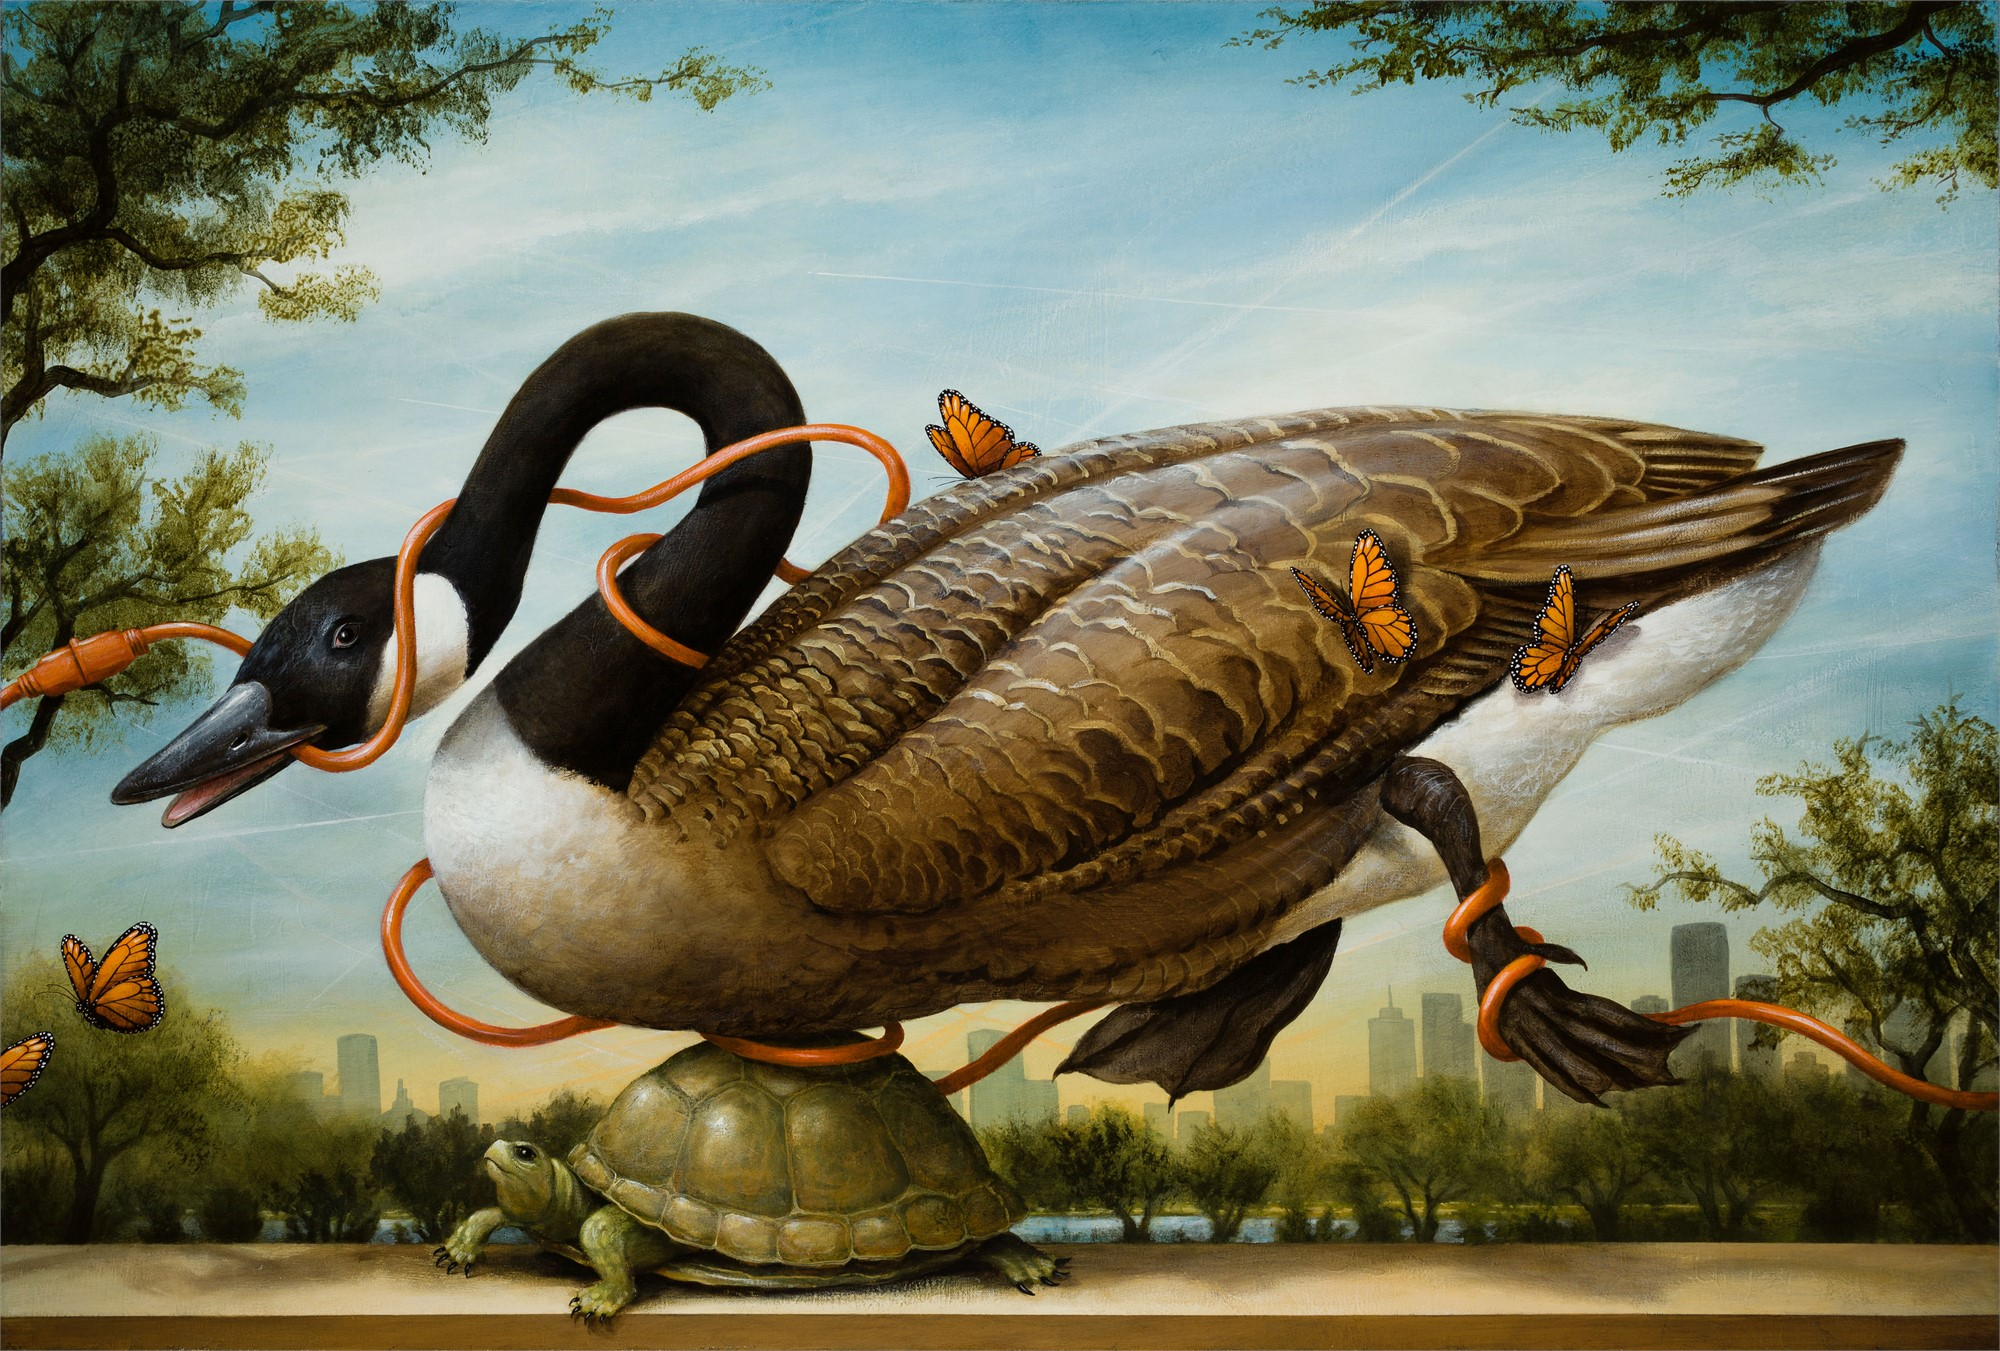 Migration Interrupted by Kevin Sloan